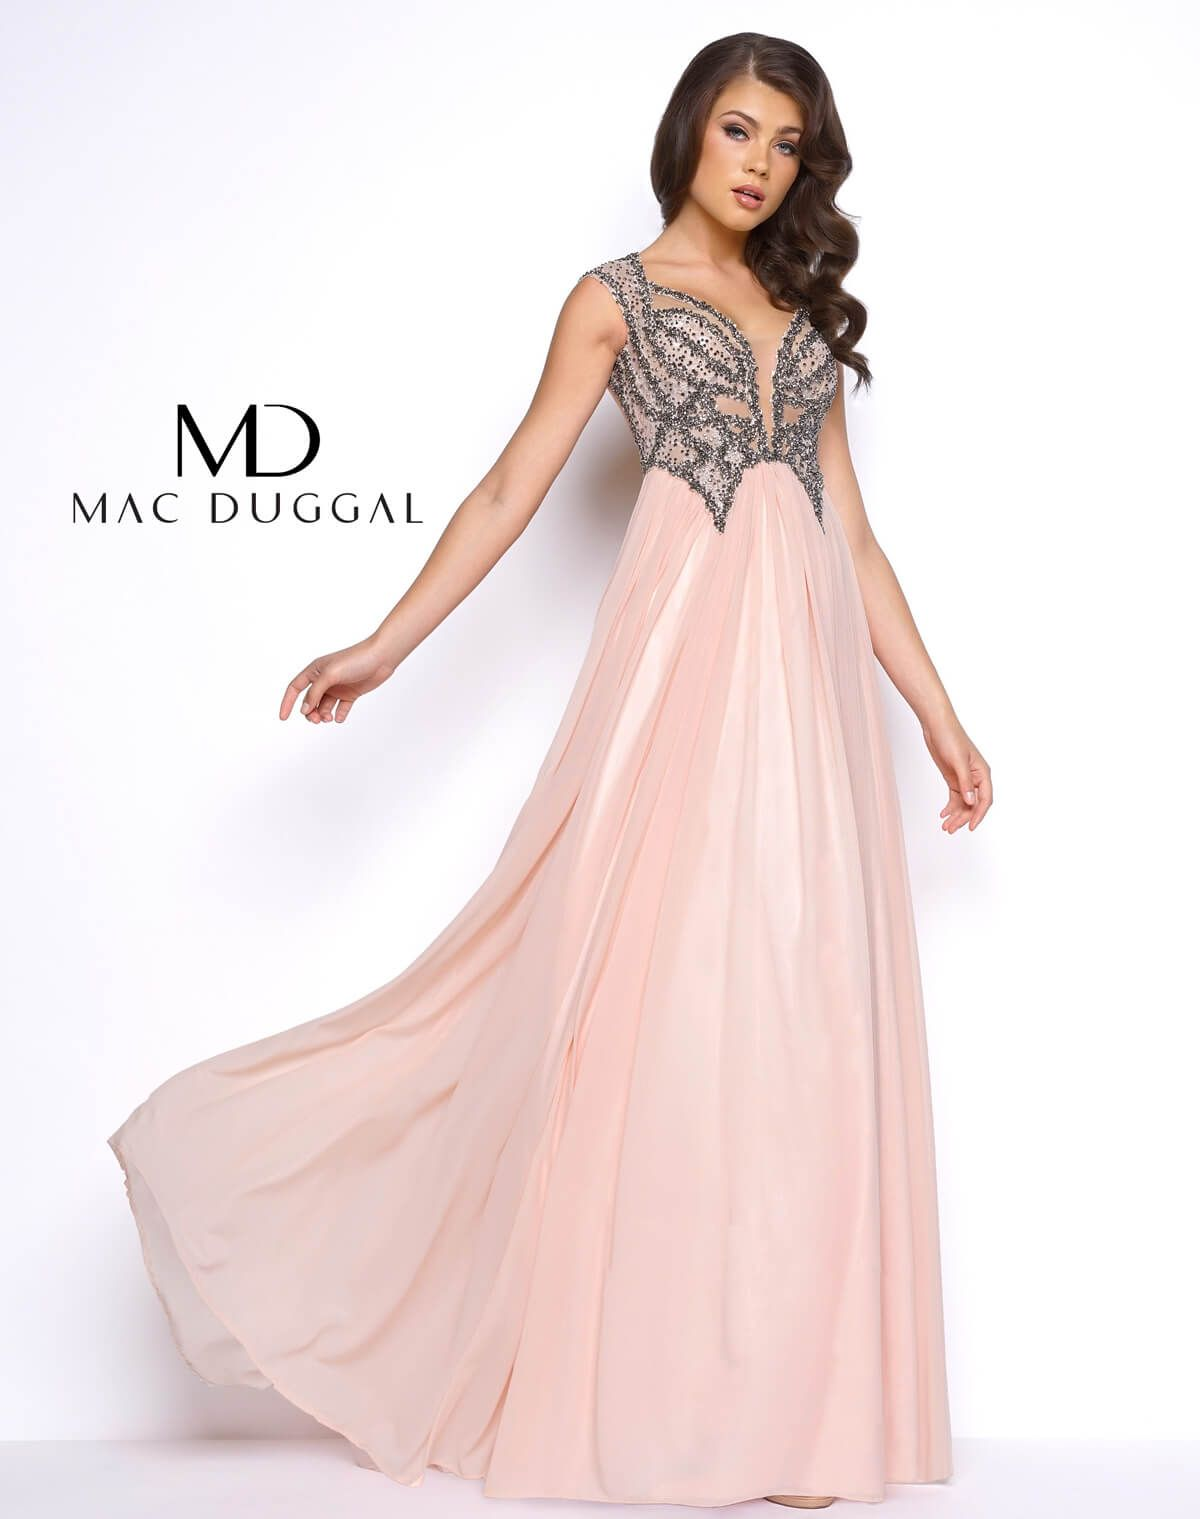 Mac duggal new coming beads embellished long aline prom dress style